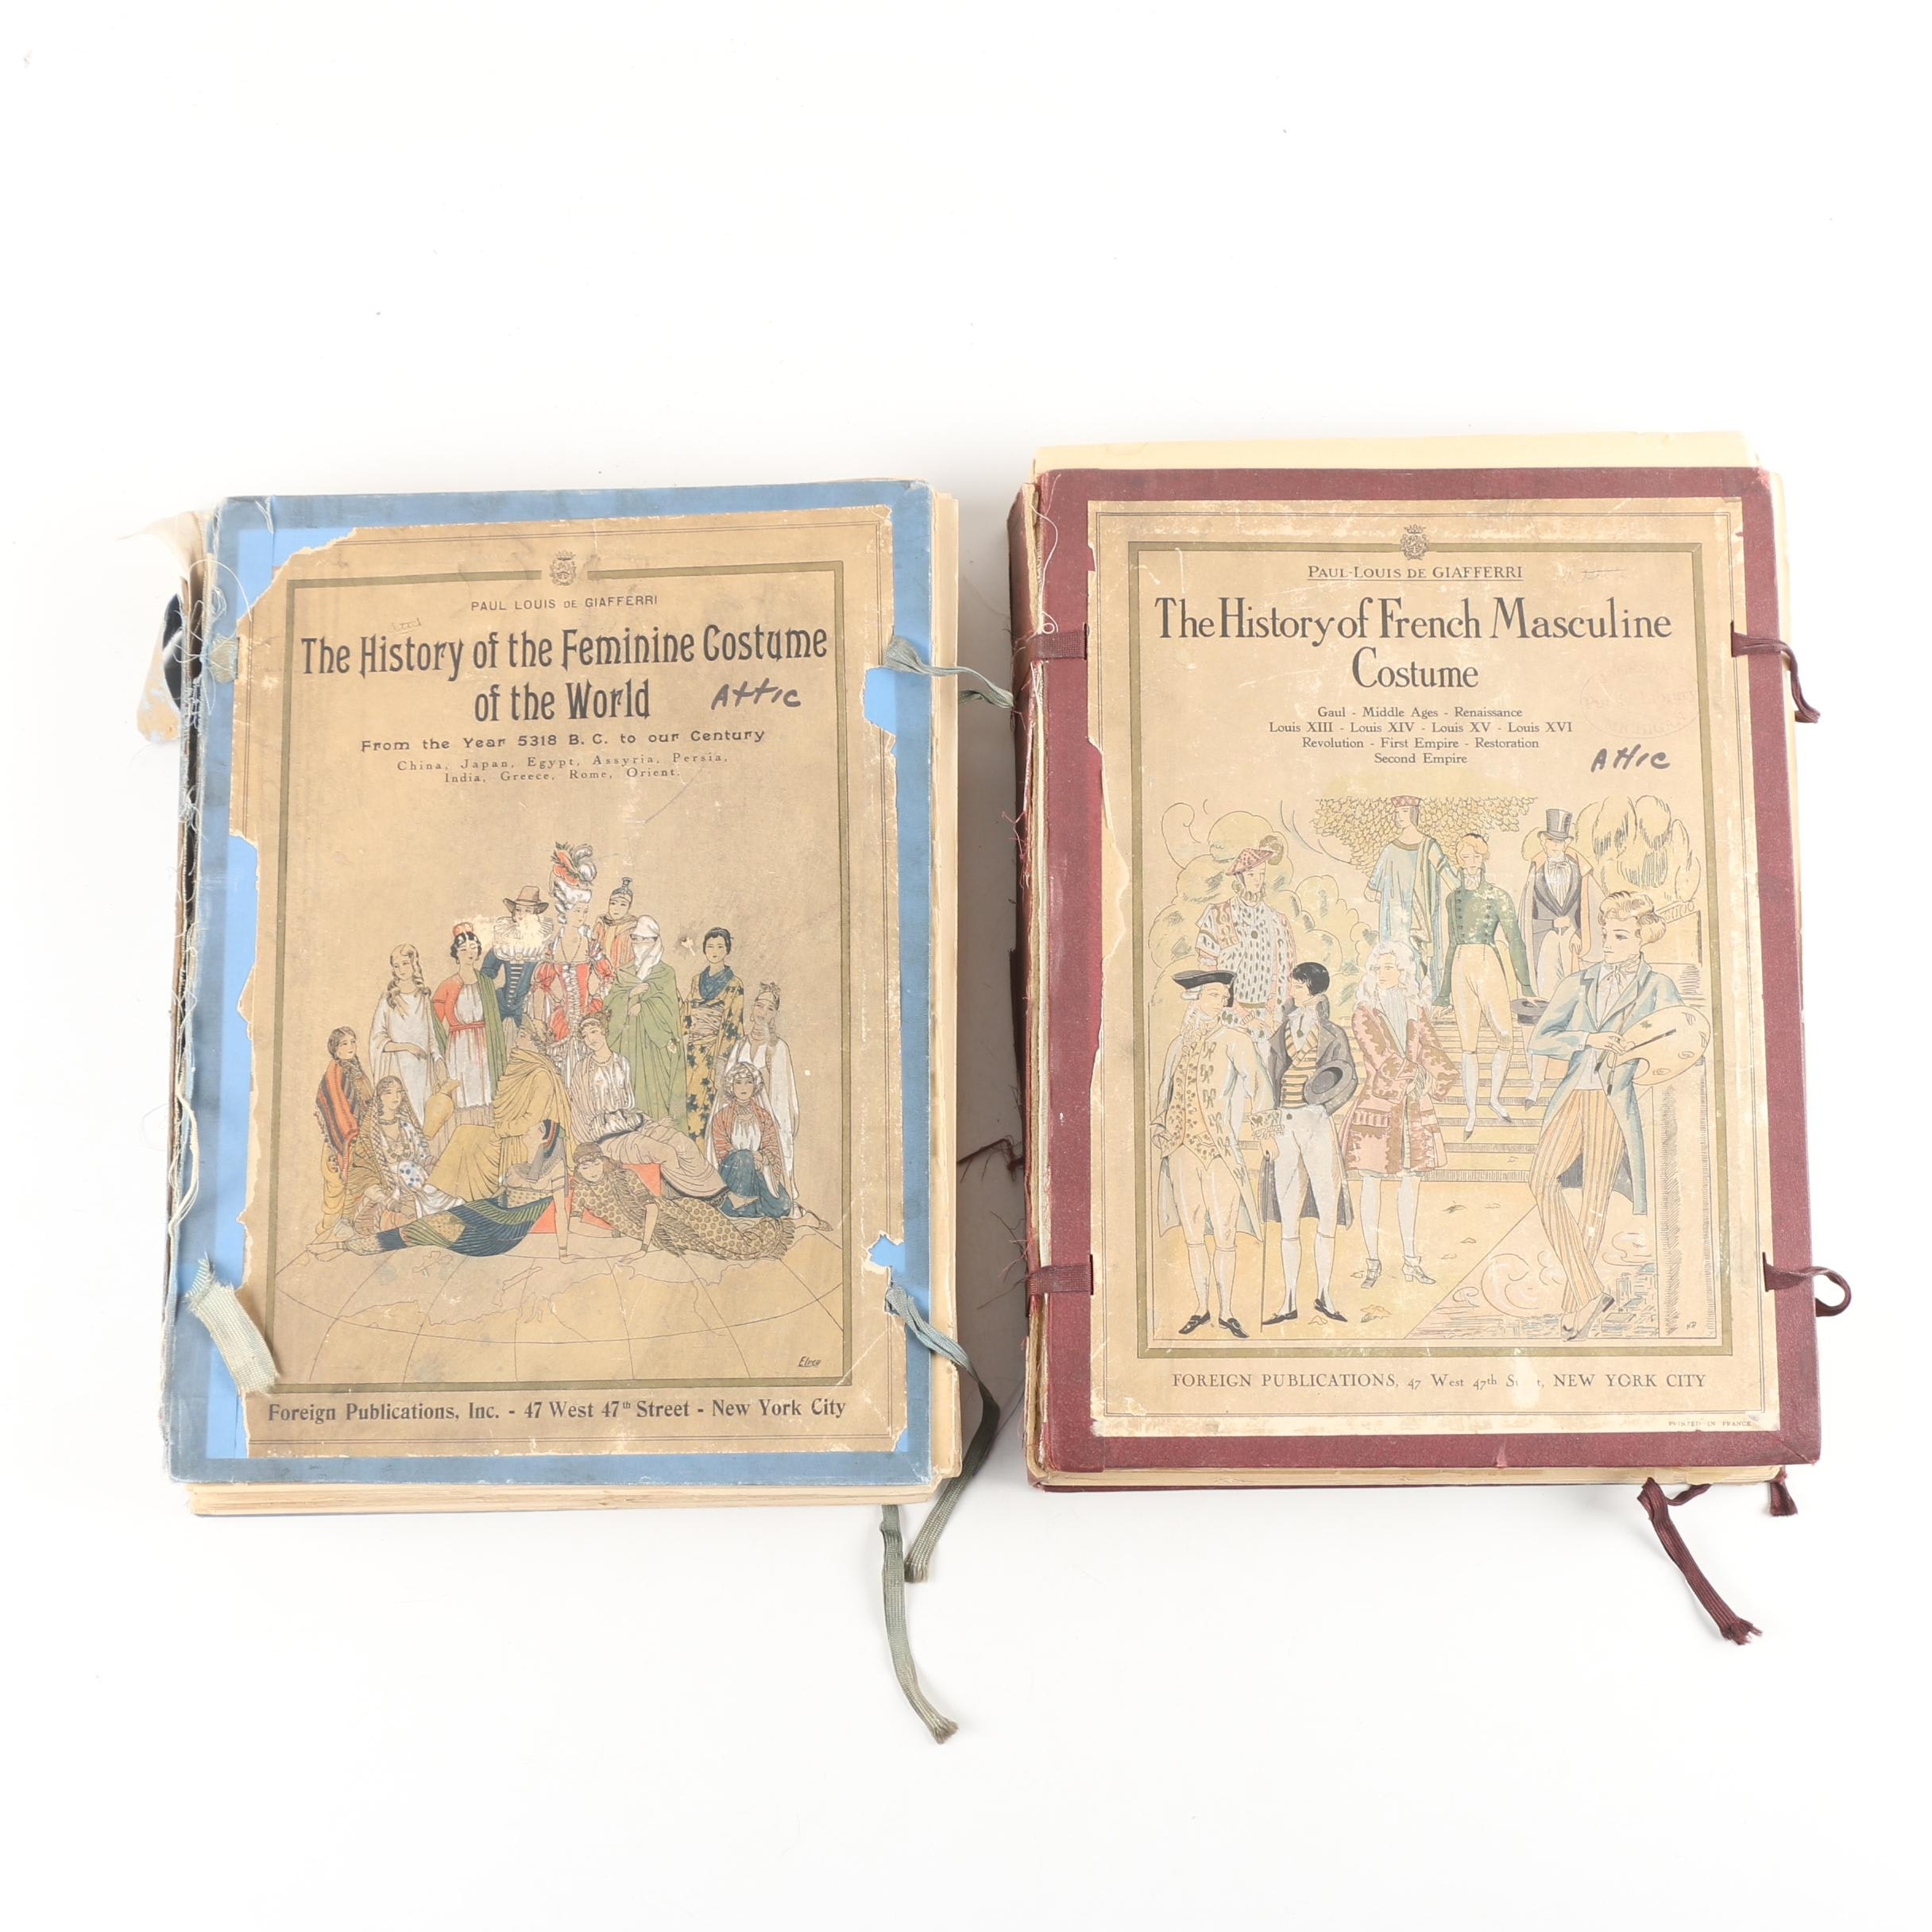 Illustrated Histories of French Costumes by De Giafferri